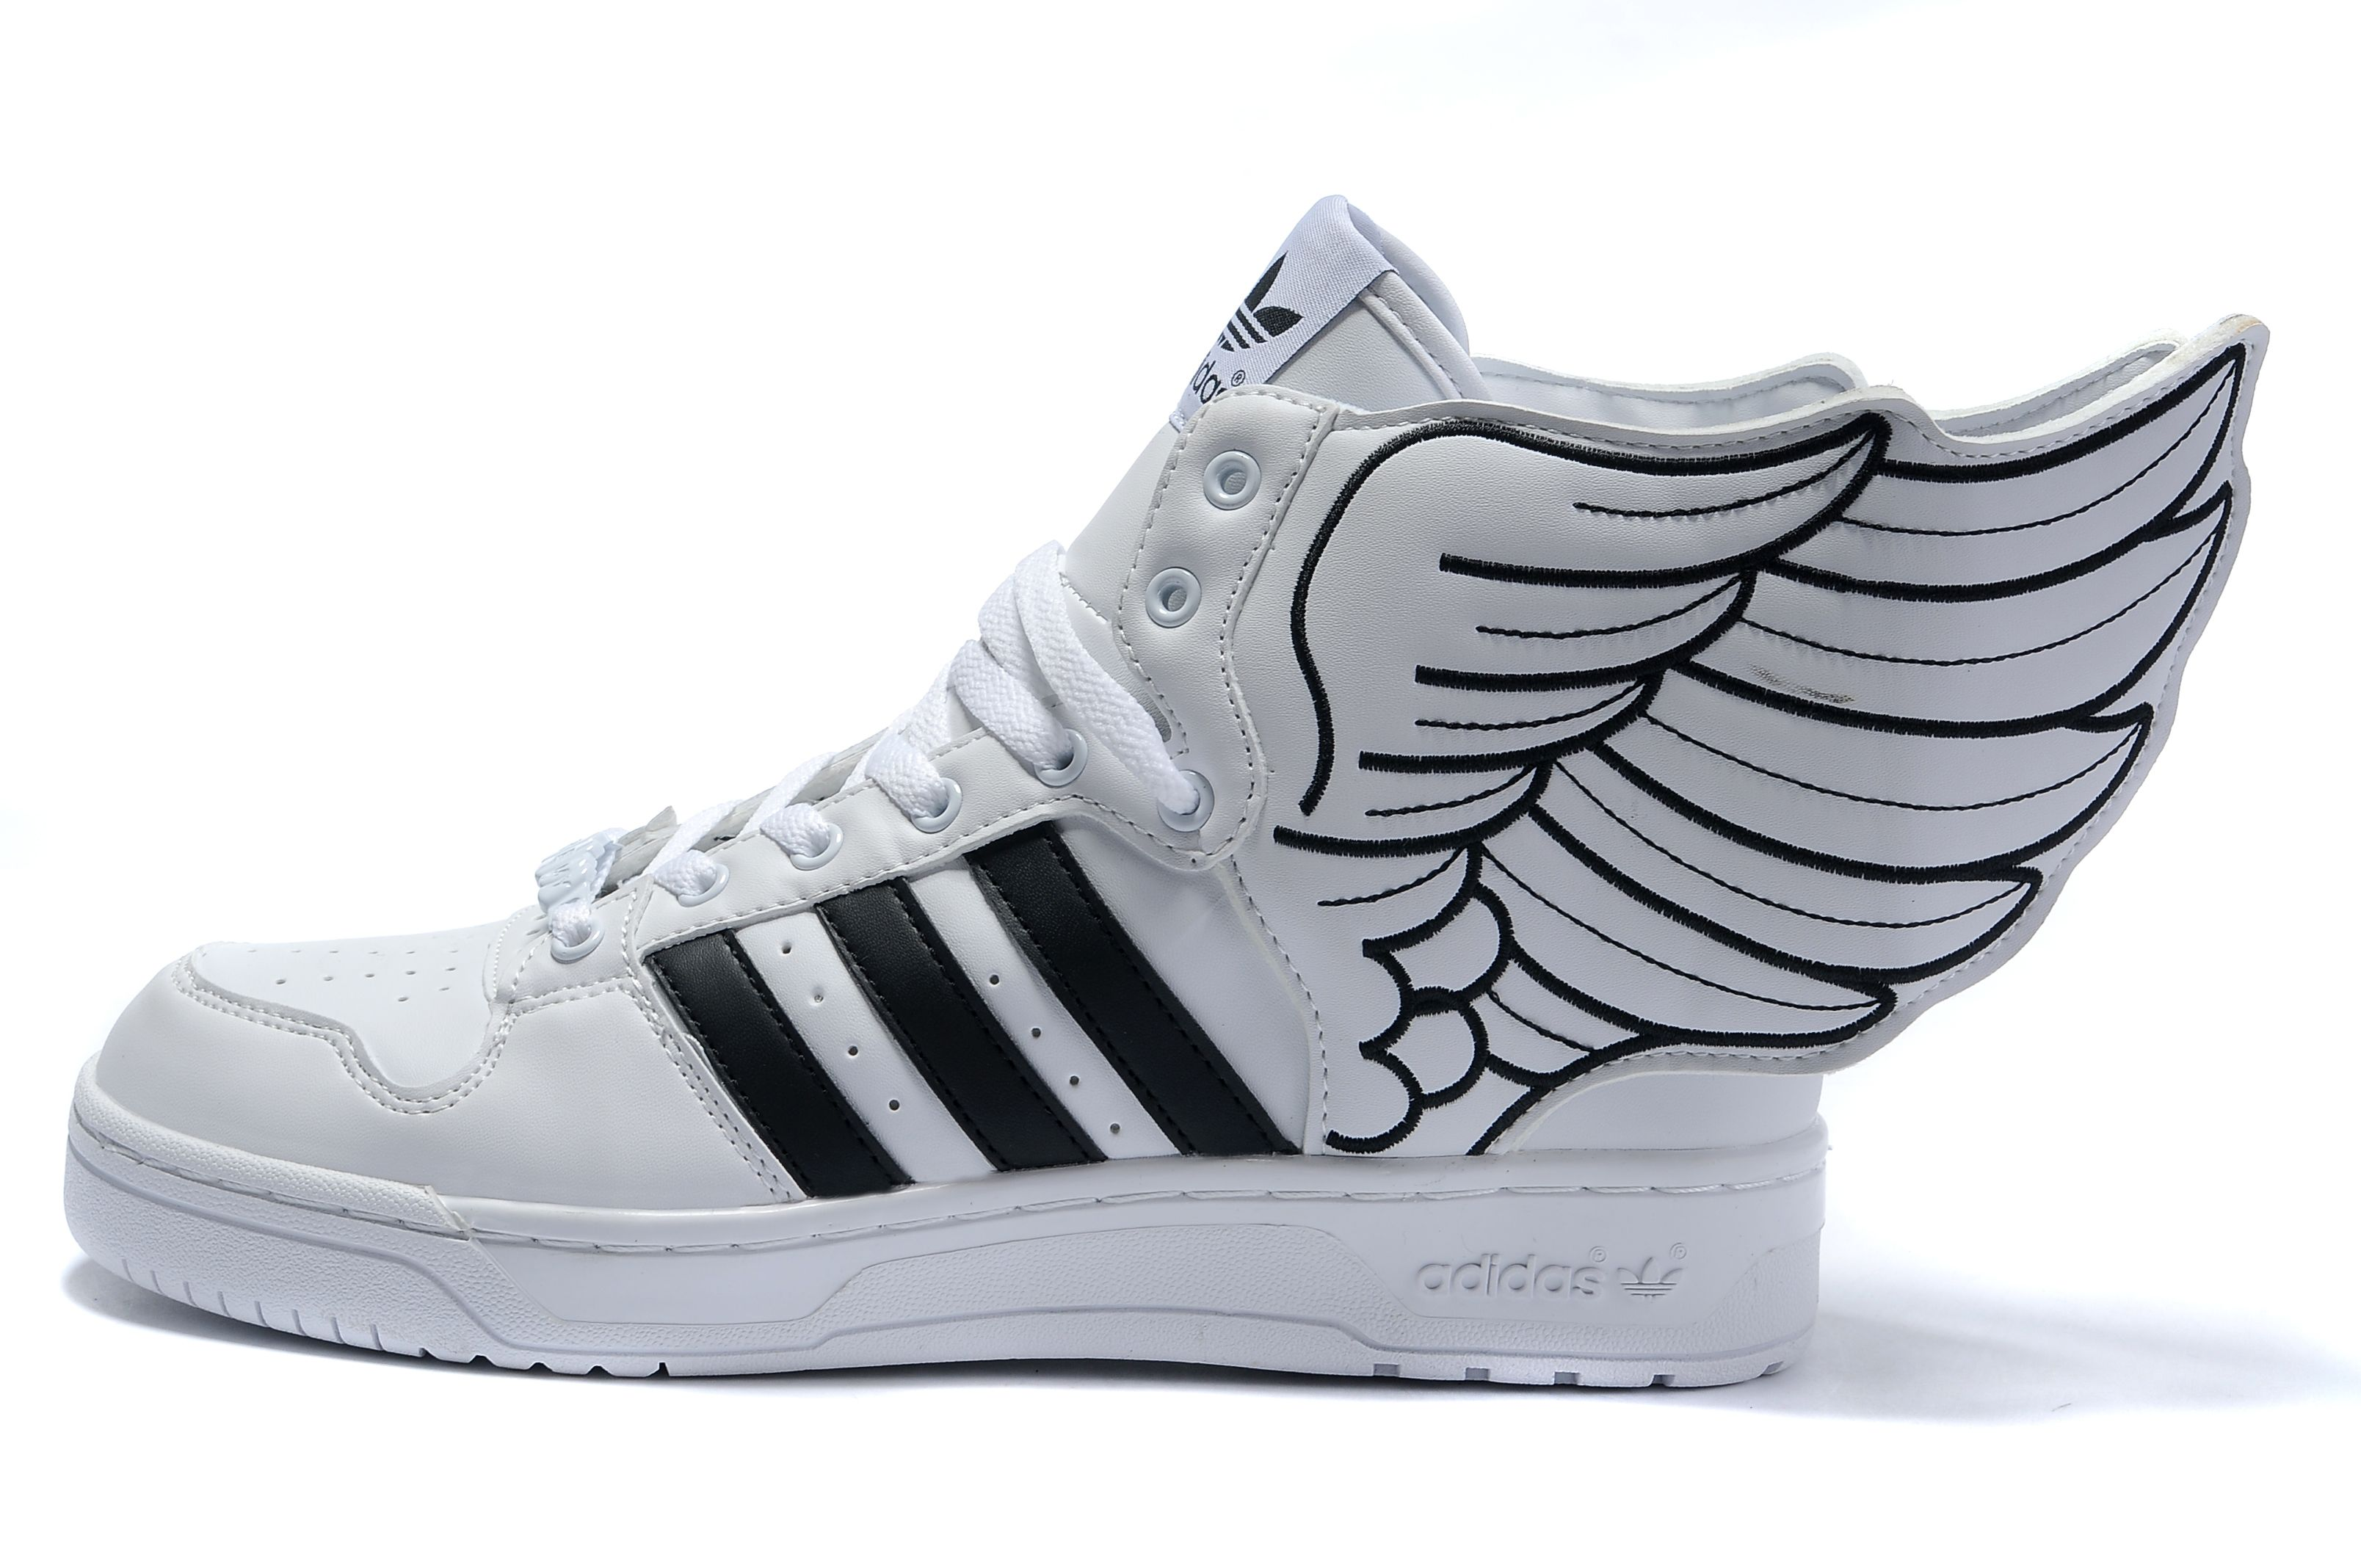 the best attitude 29513 3410f Adidas Jeremy Scott Wings 2.0 White Black - Just call me Hermes.